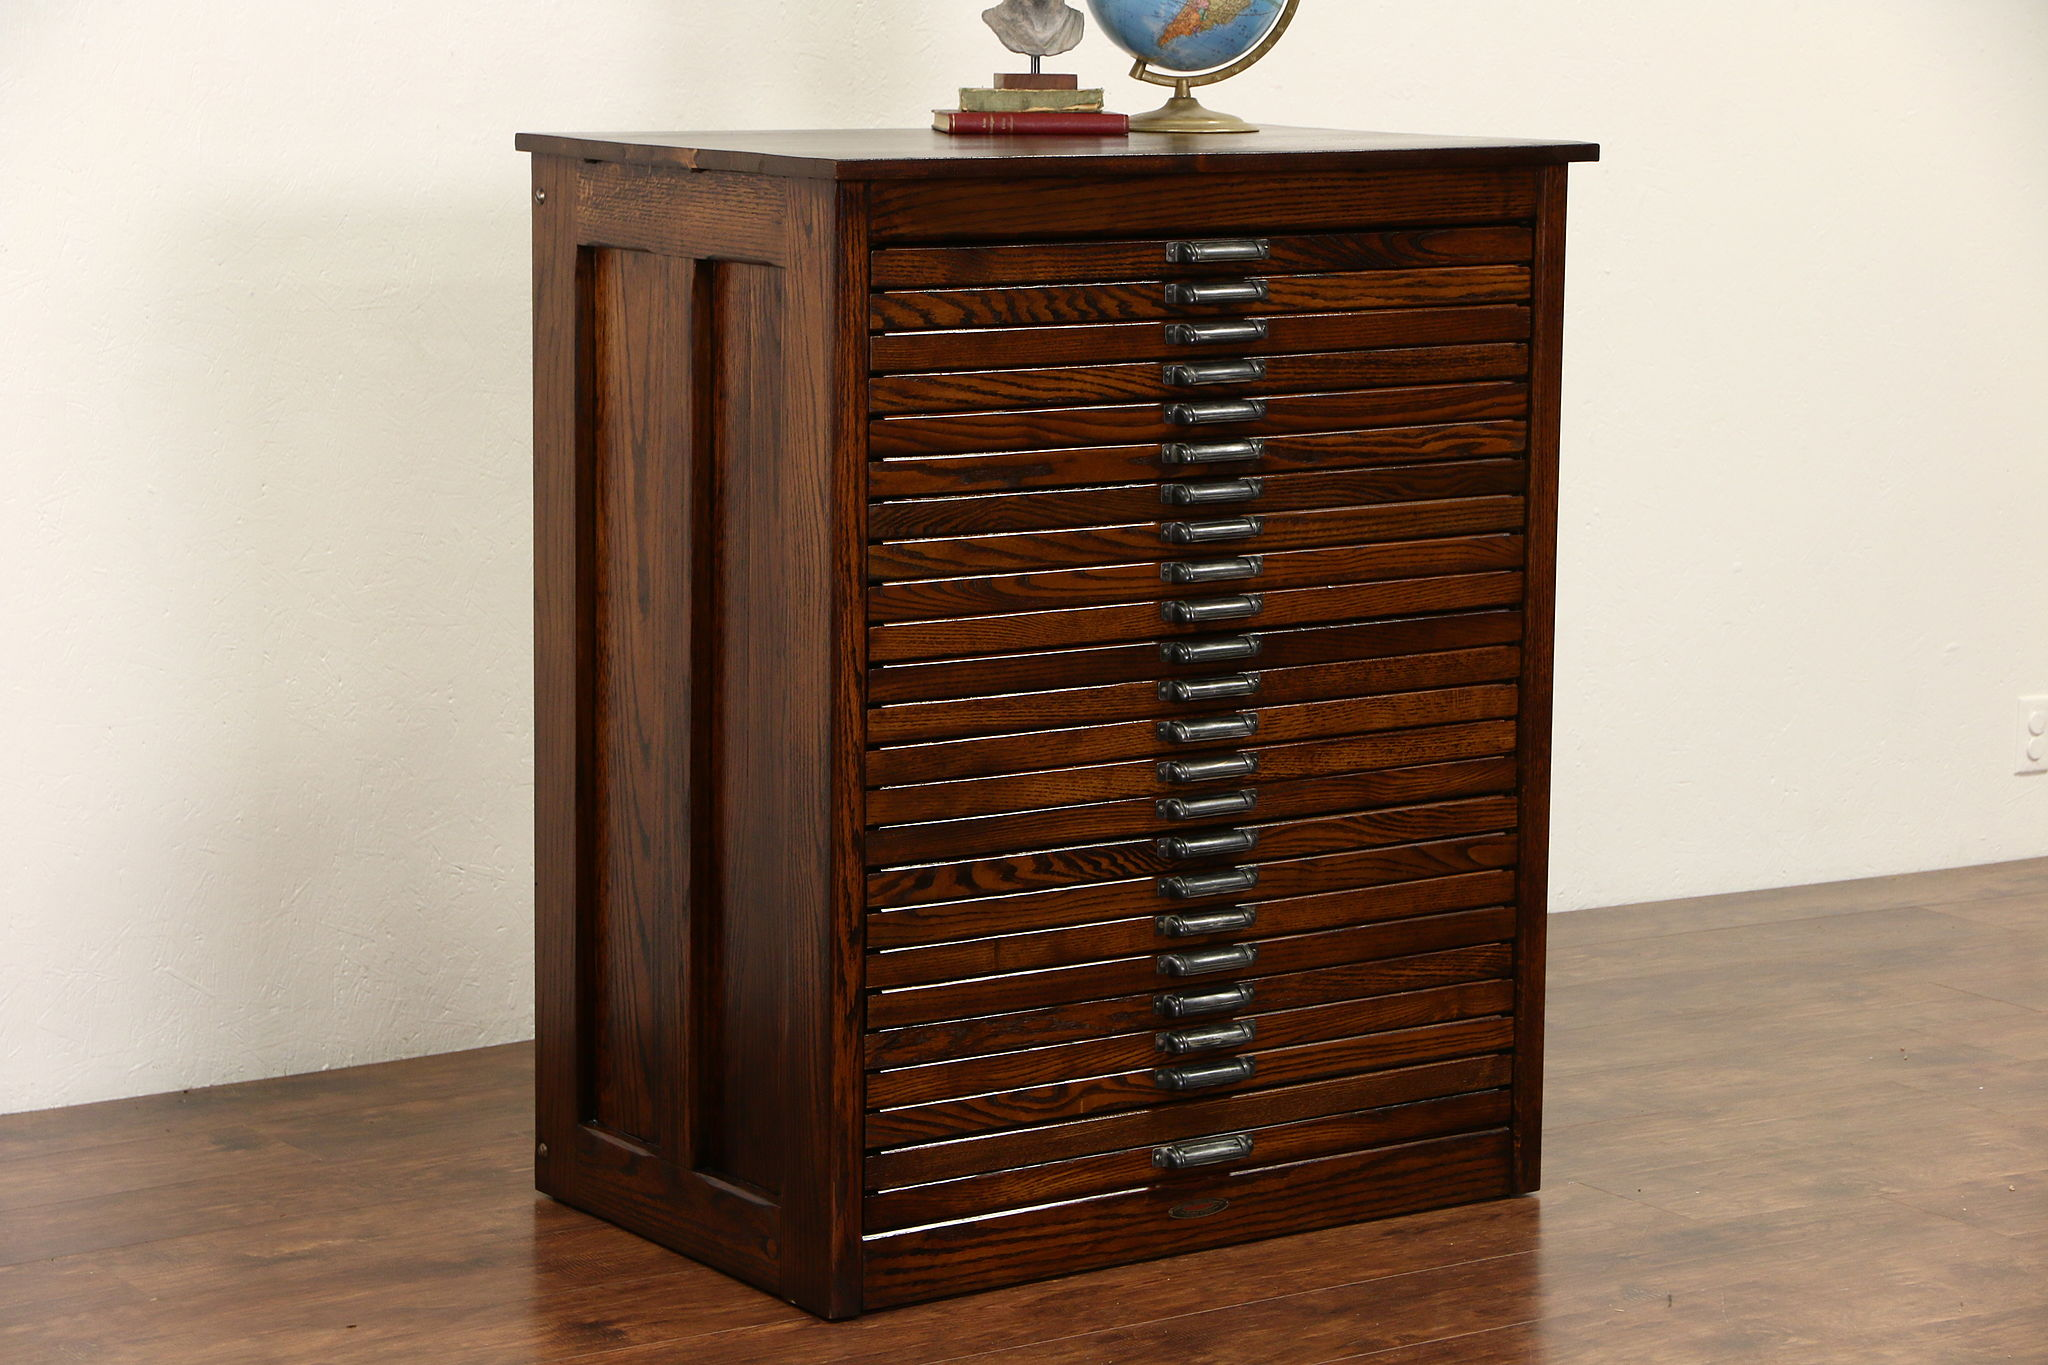 Convert Cabinet To File Drawer Sold Files Collector Cabinets Harp Gallery Antiques